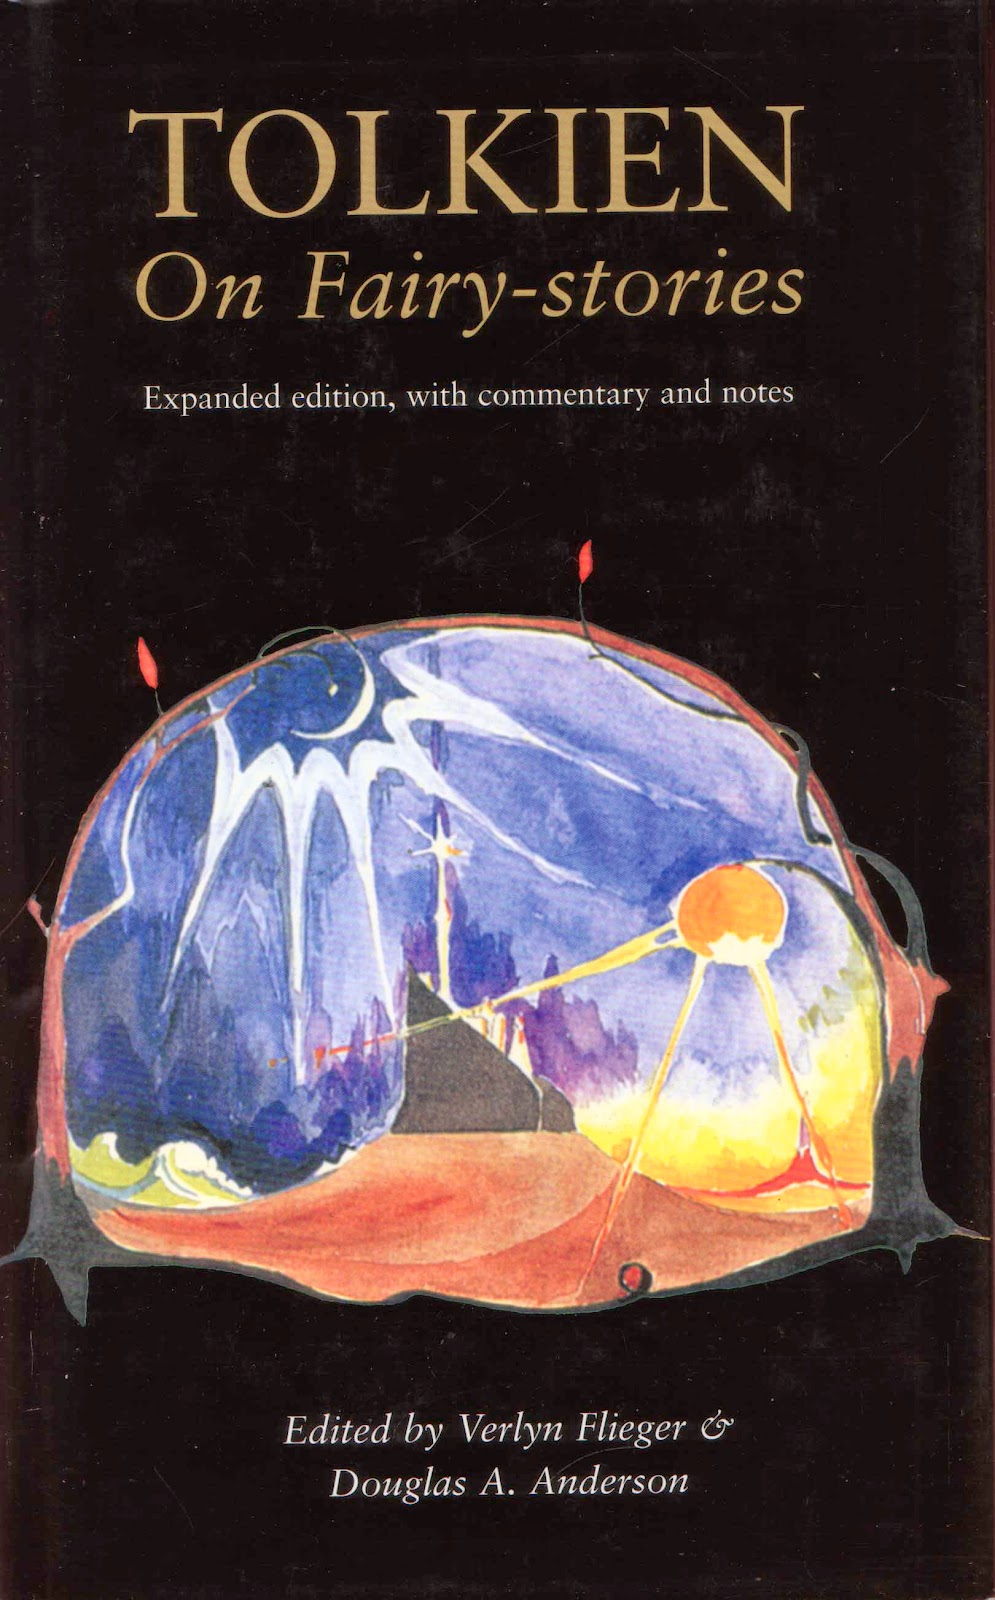 huc gabet tolkien on fairy stories expanded edition ldquoj r r tolkien s ldquoon fairy storiesrdquo is his most studied and most quoted essay an exemplary personal statement of his views on the role of imagination in